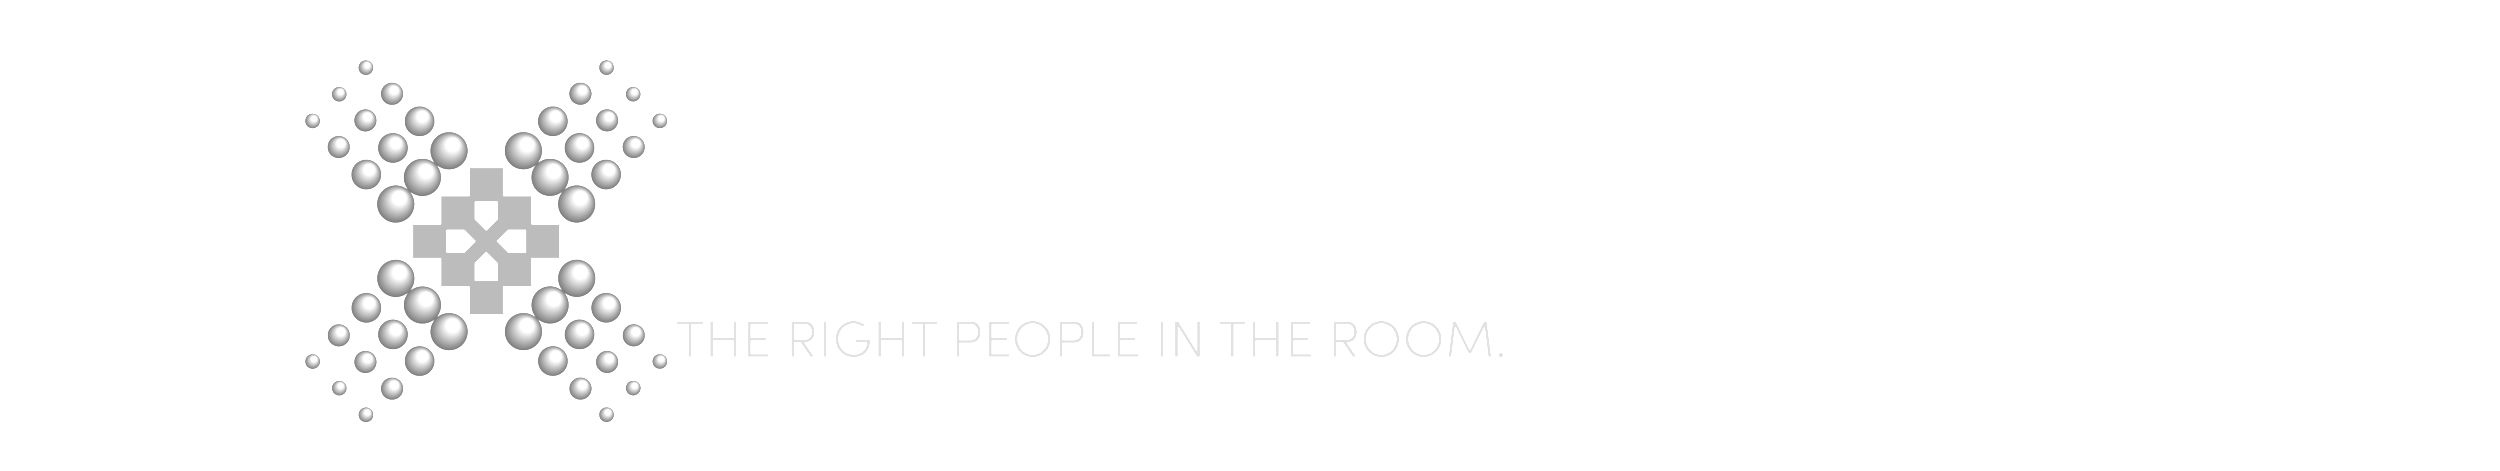 MechanicalXchange (R) _ White PNG.png